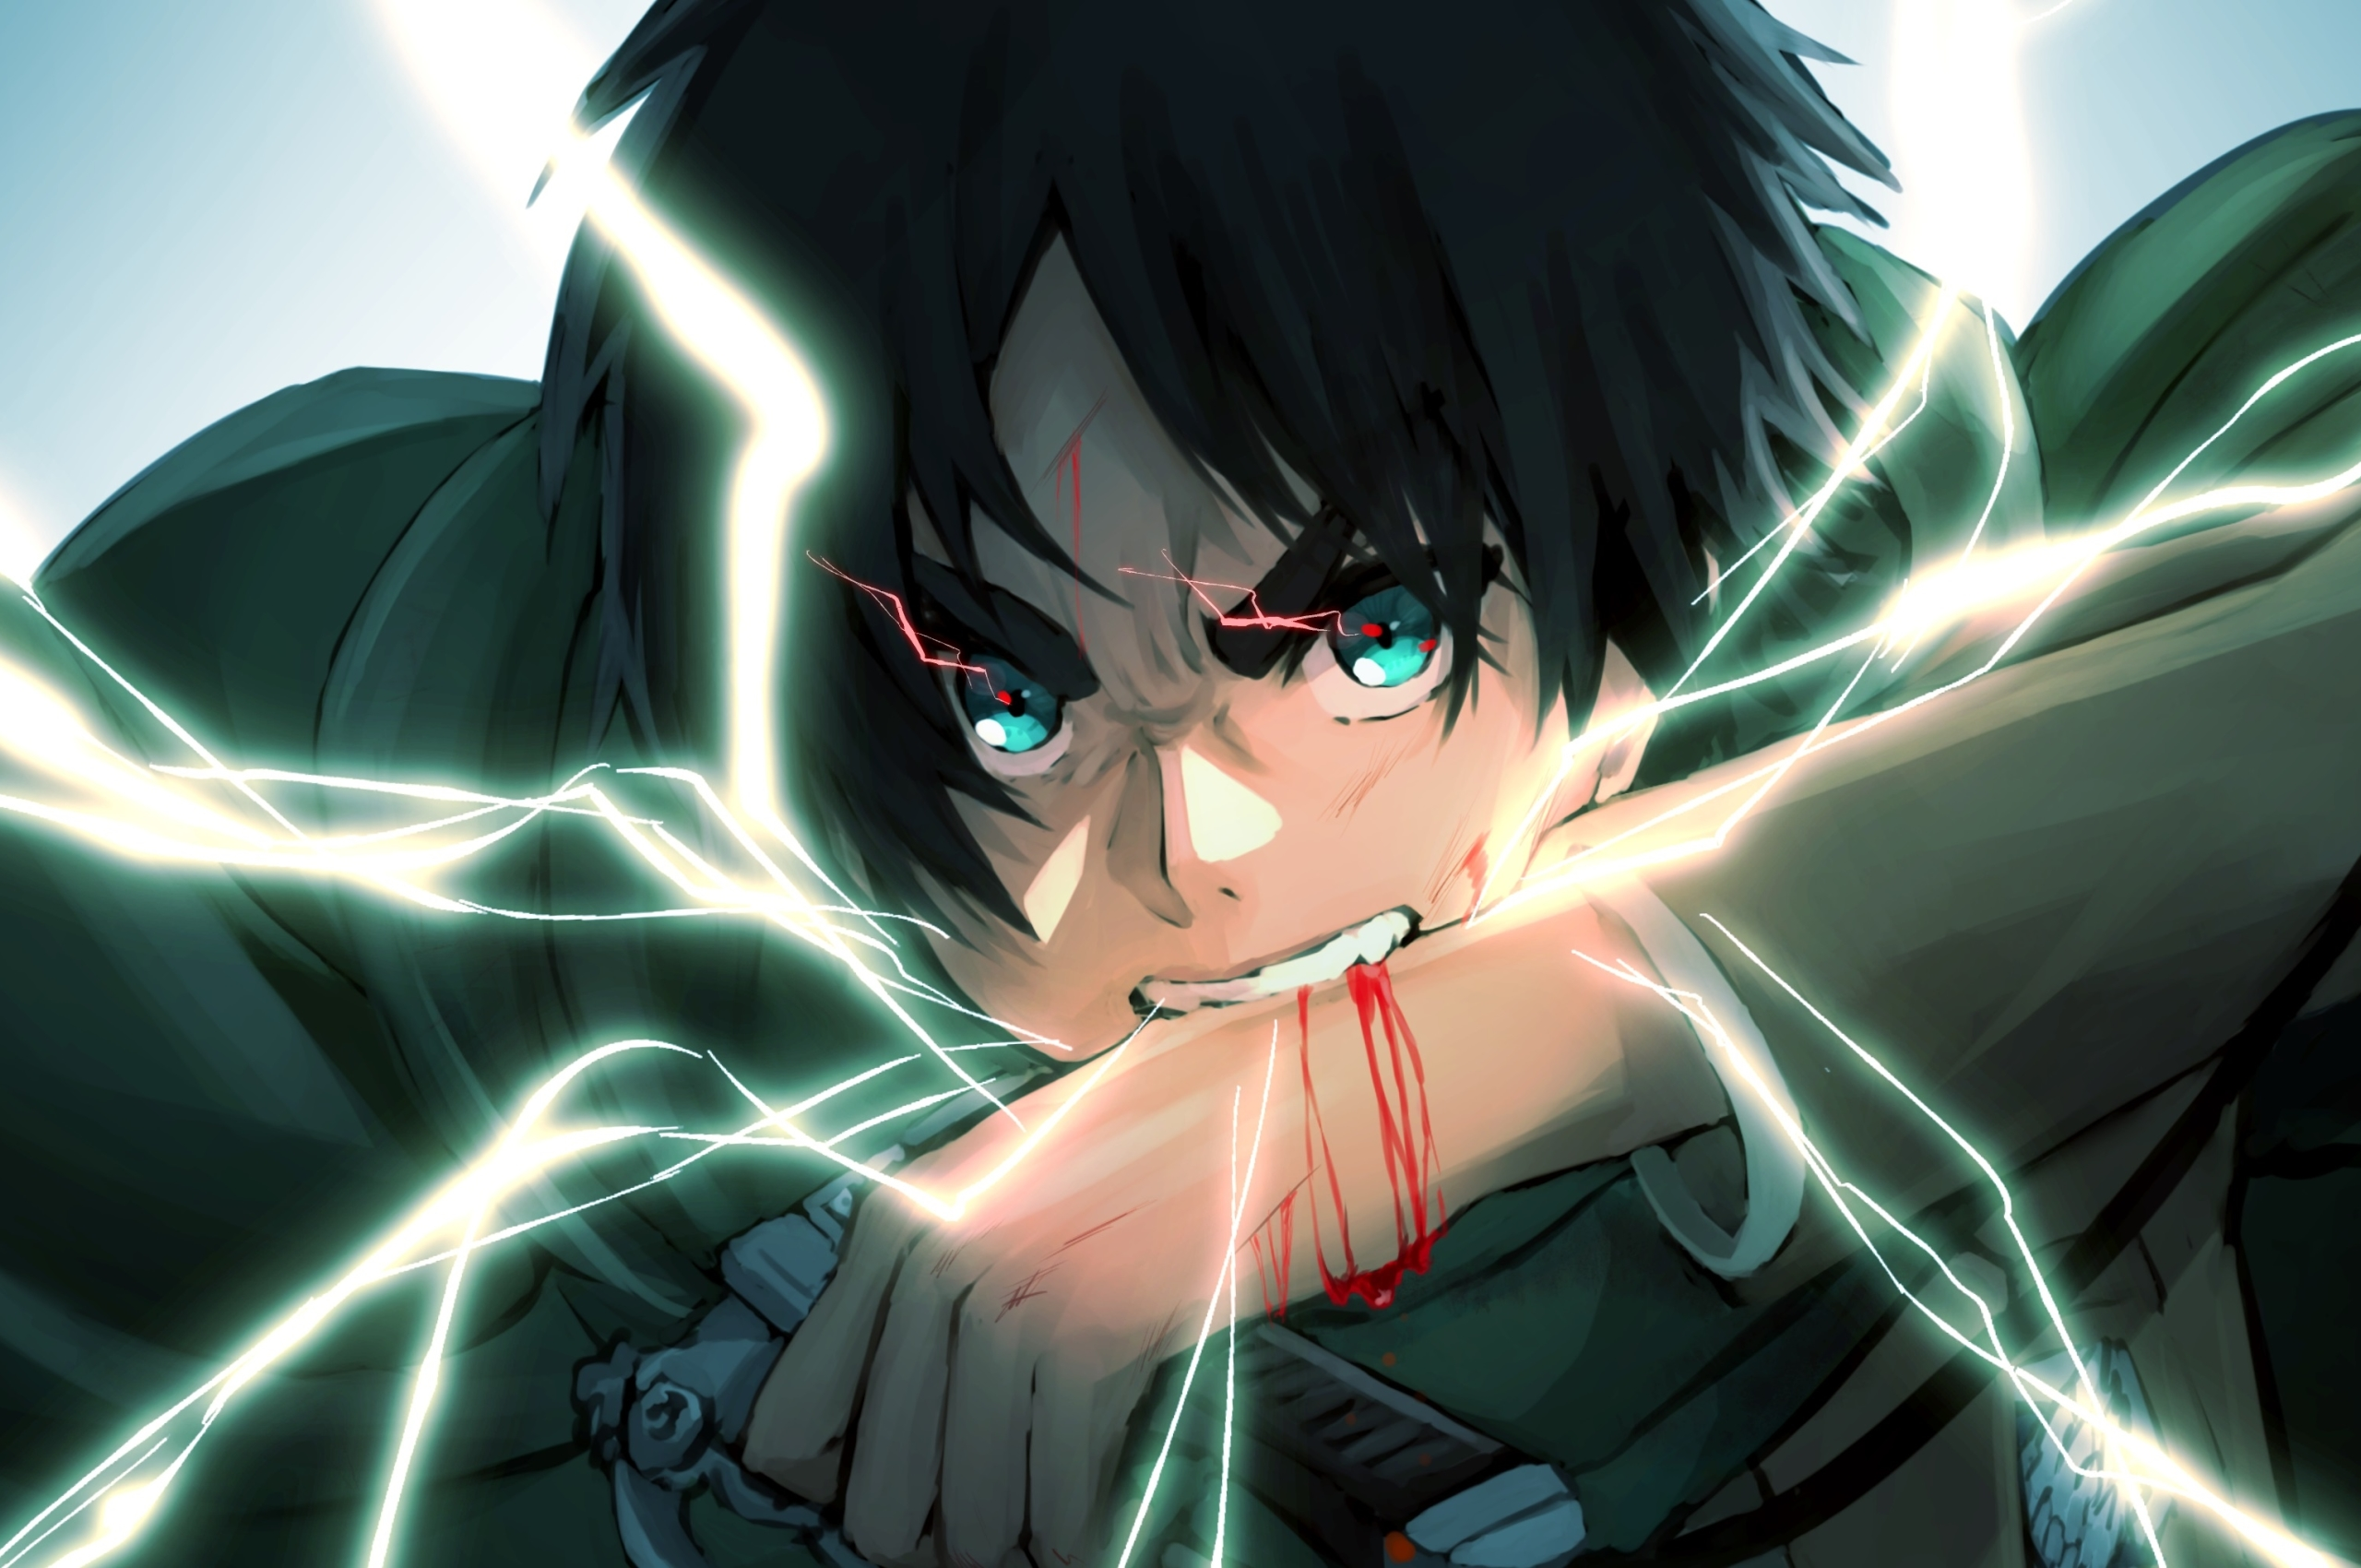 2560x1700 Eren Yeager Anime Art 4k Chromebook Pixel Wallpaper Hd Anime 4k Wallpapers Images Photos And Background